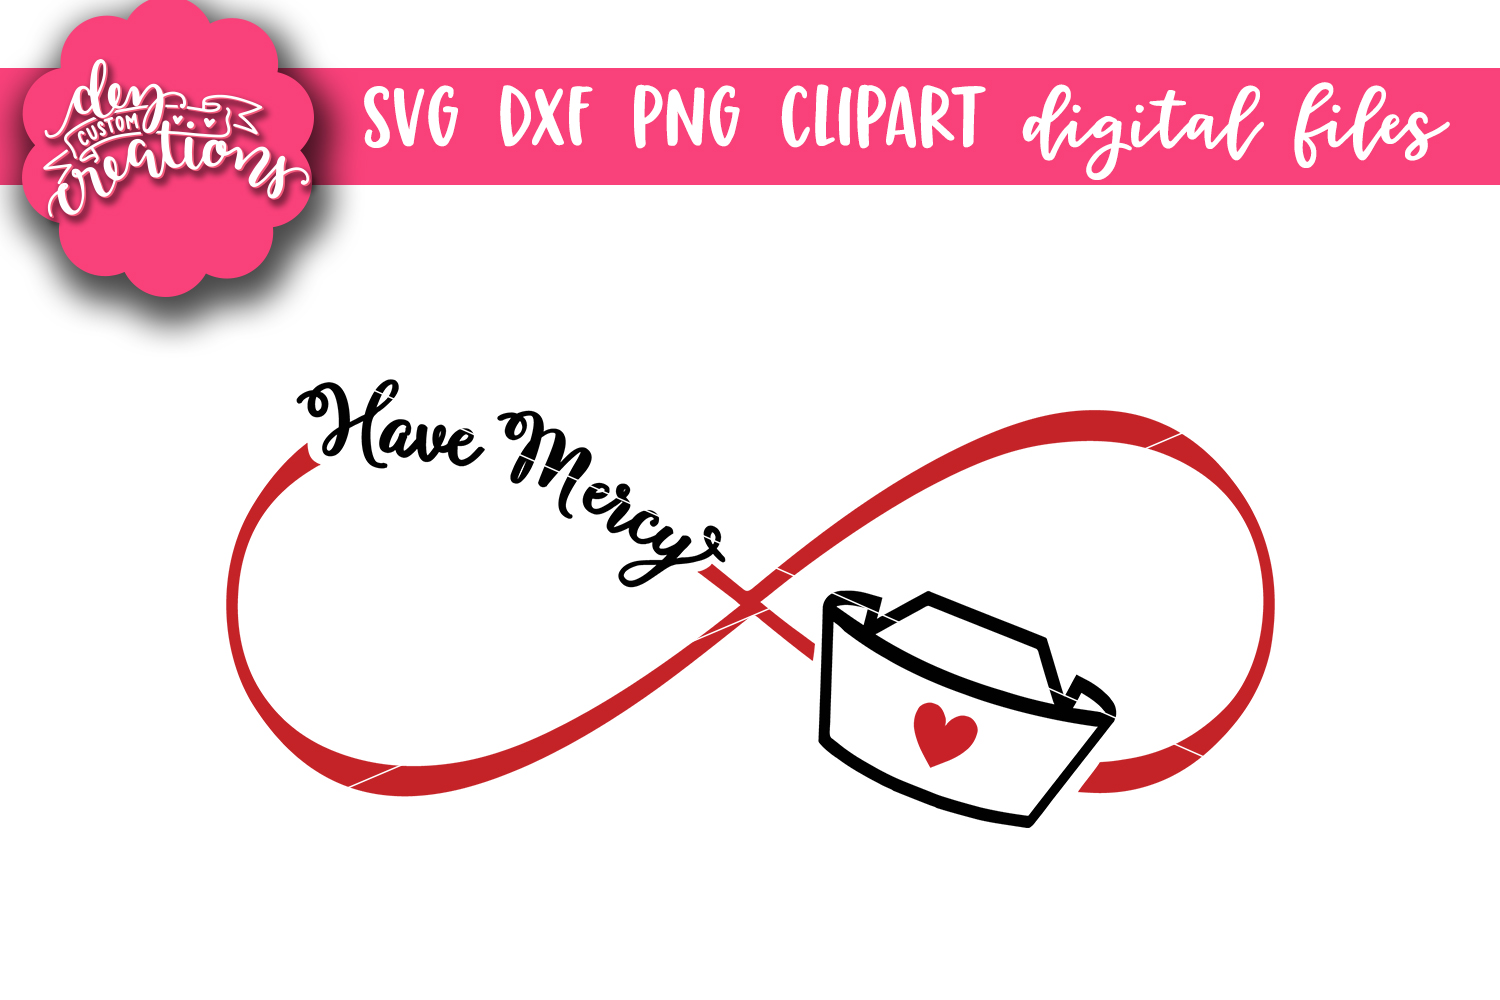 Have Mercy Nurse Infinity - SVG, DXF, PNG Digital Cut Files example image 1